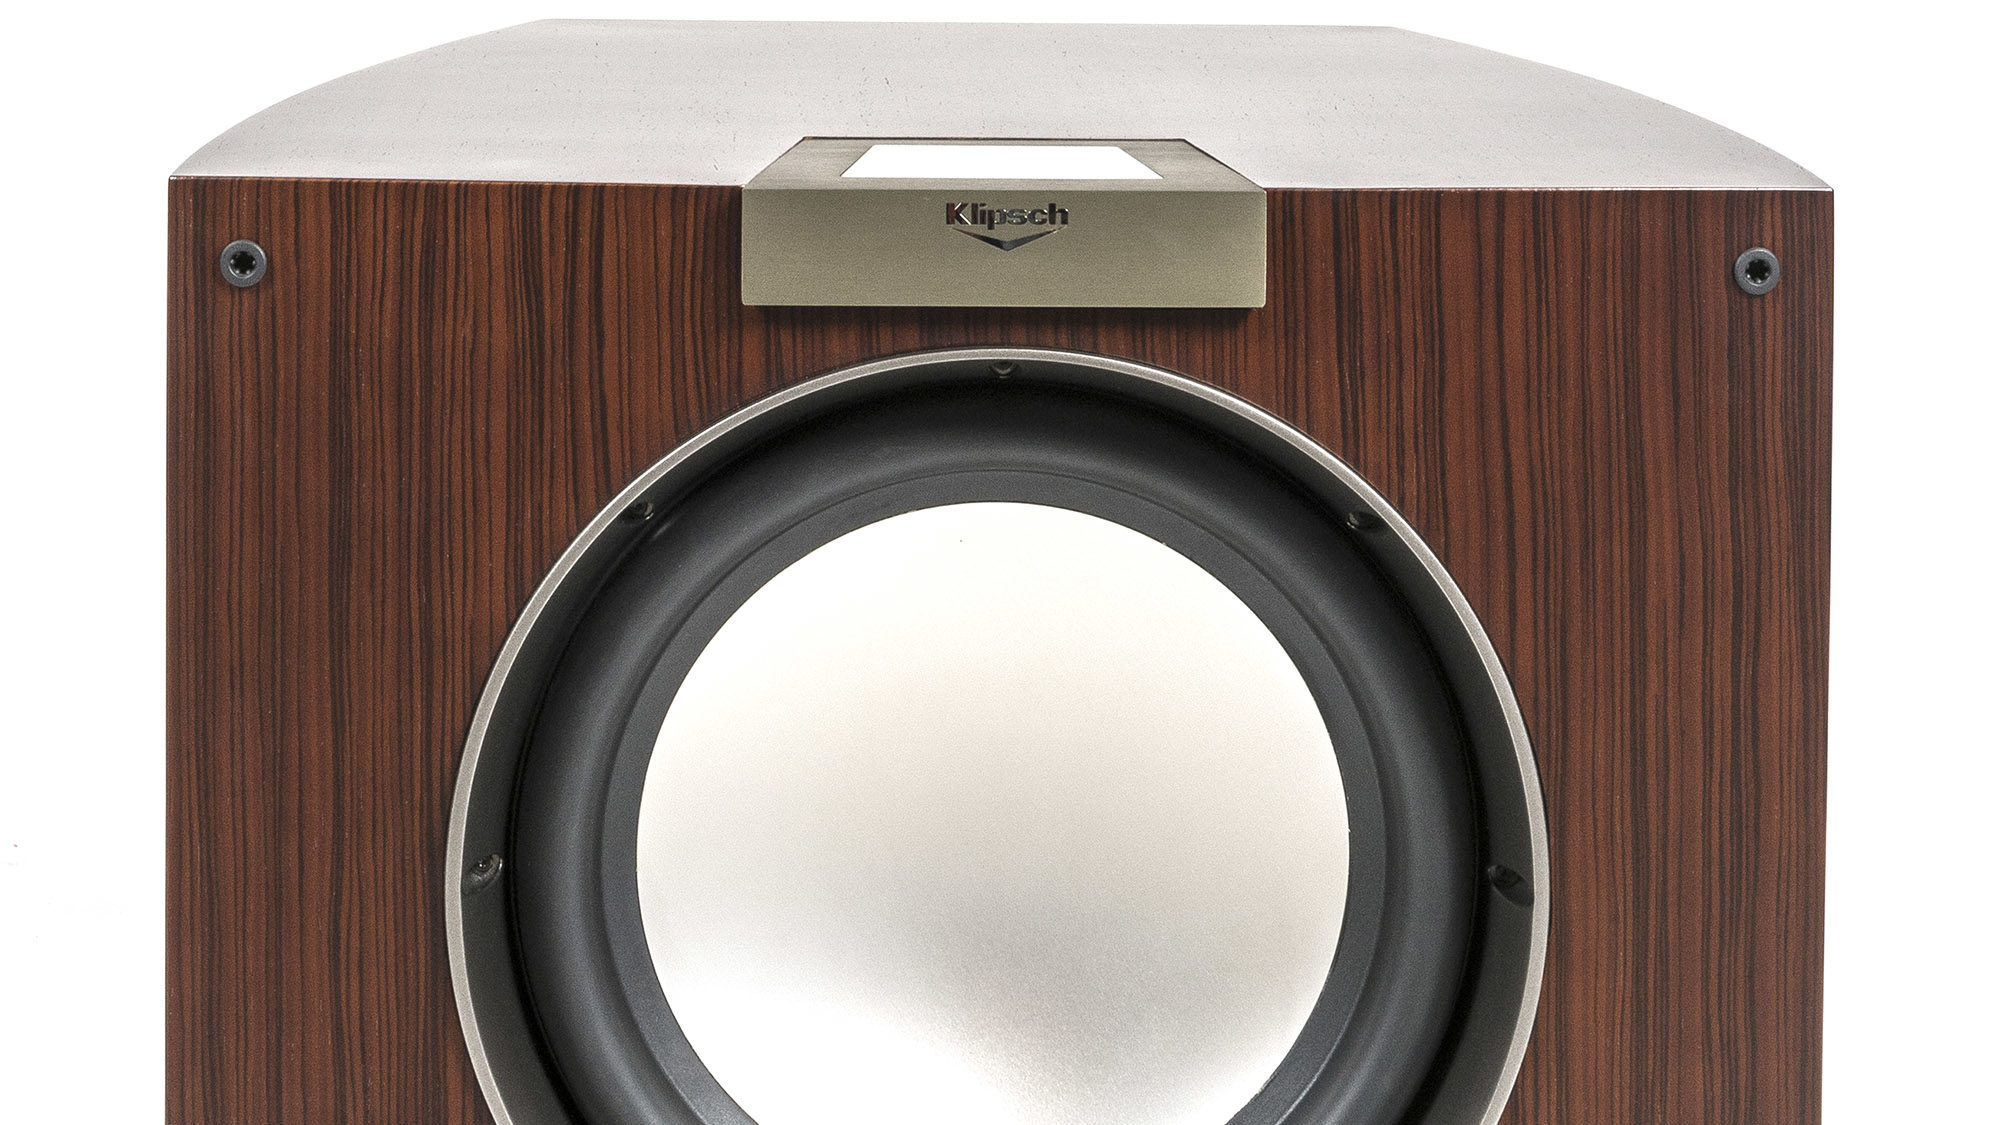 Klipsch  Palladium  Series  Subwoofer  Close